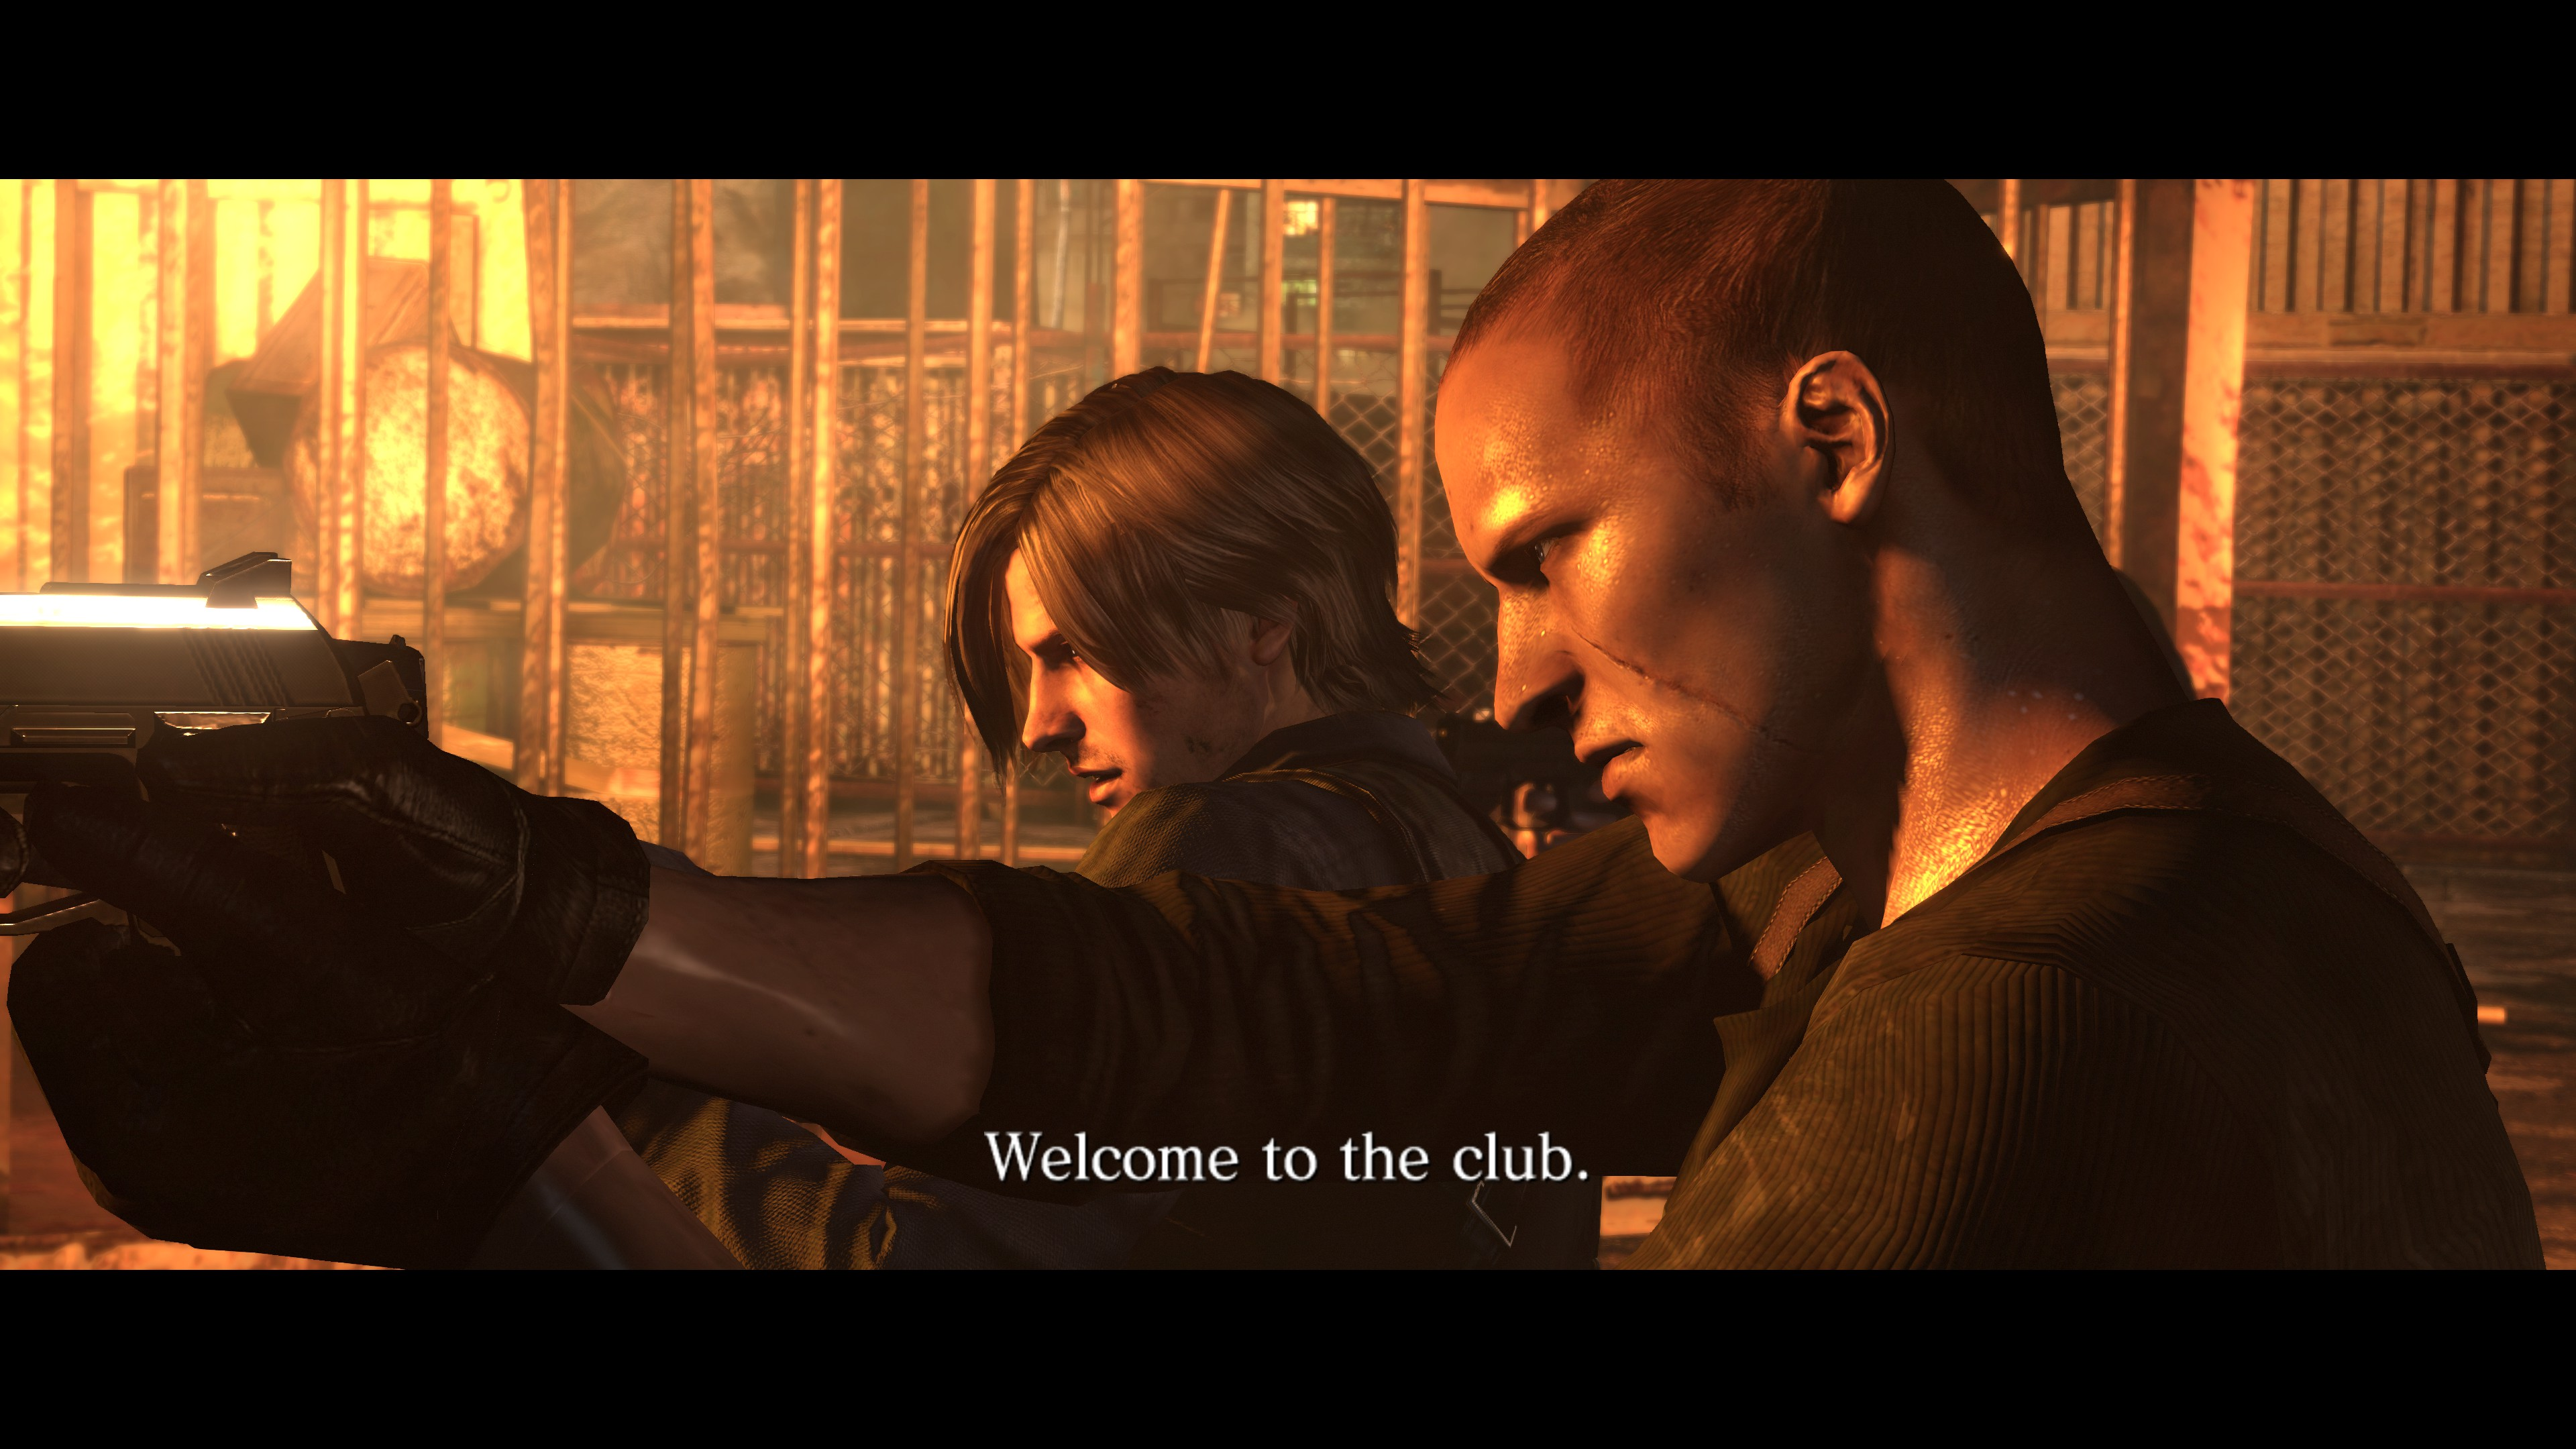 """A character aiming a gun and saying """"Welcome to the club"""""""